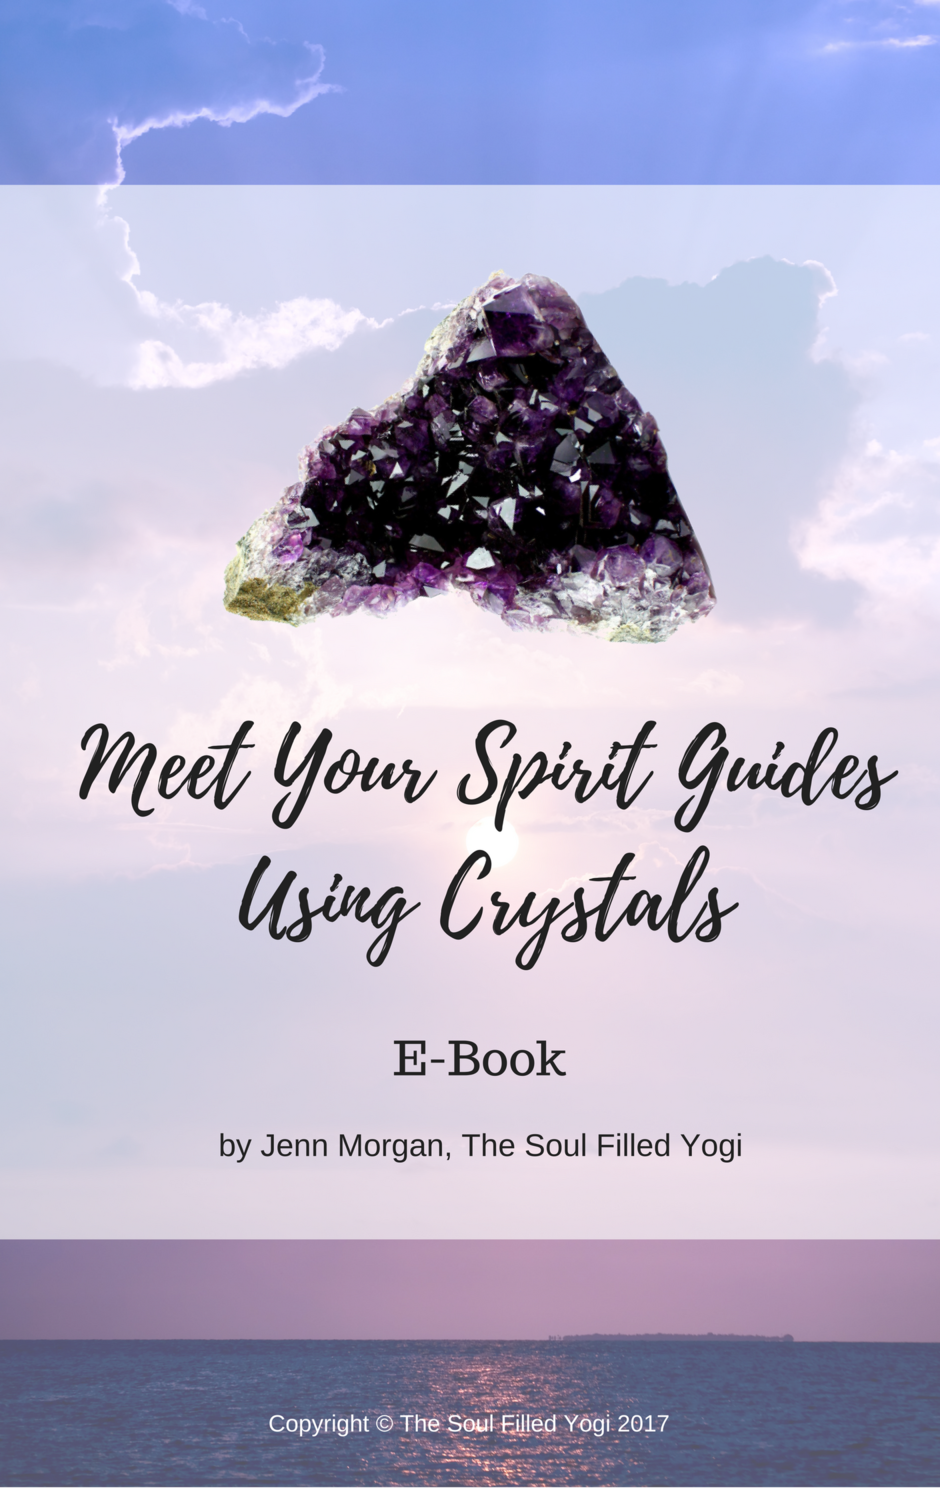 Meet Your Spirit Guides Using Crystals E-Book (Instant Download)